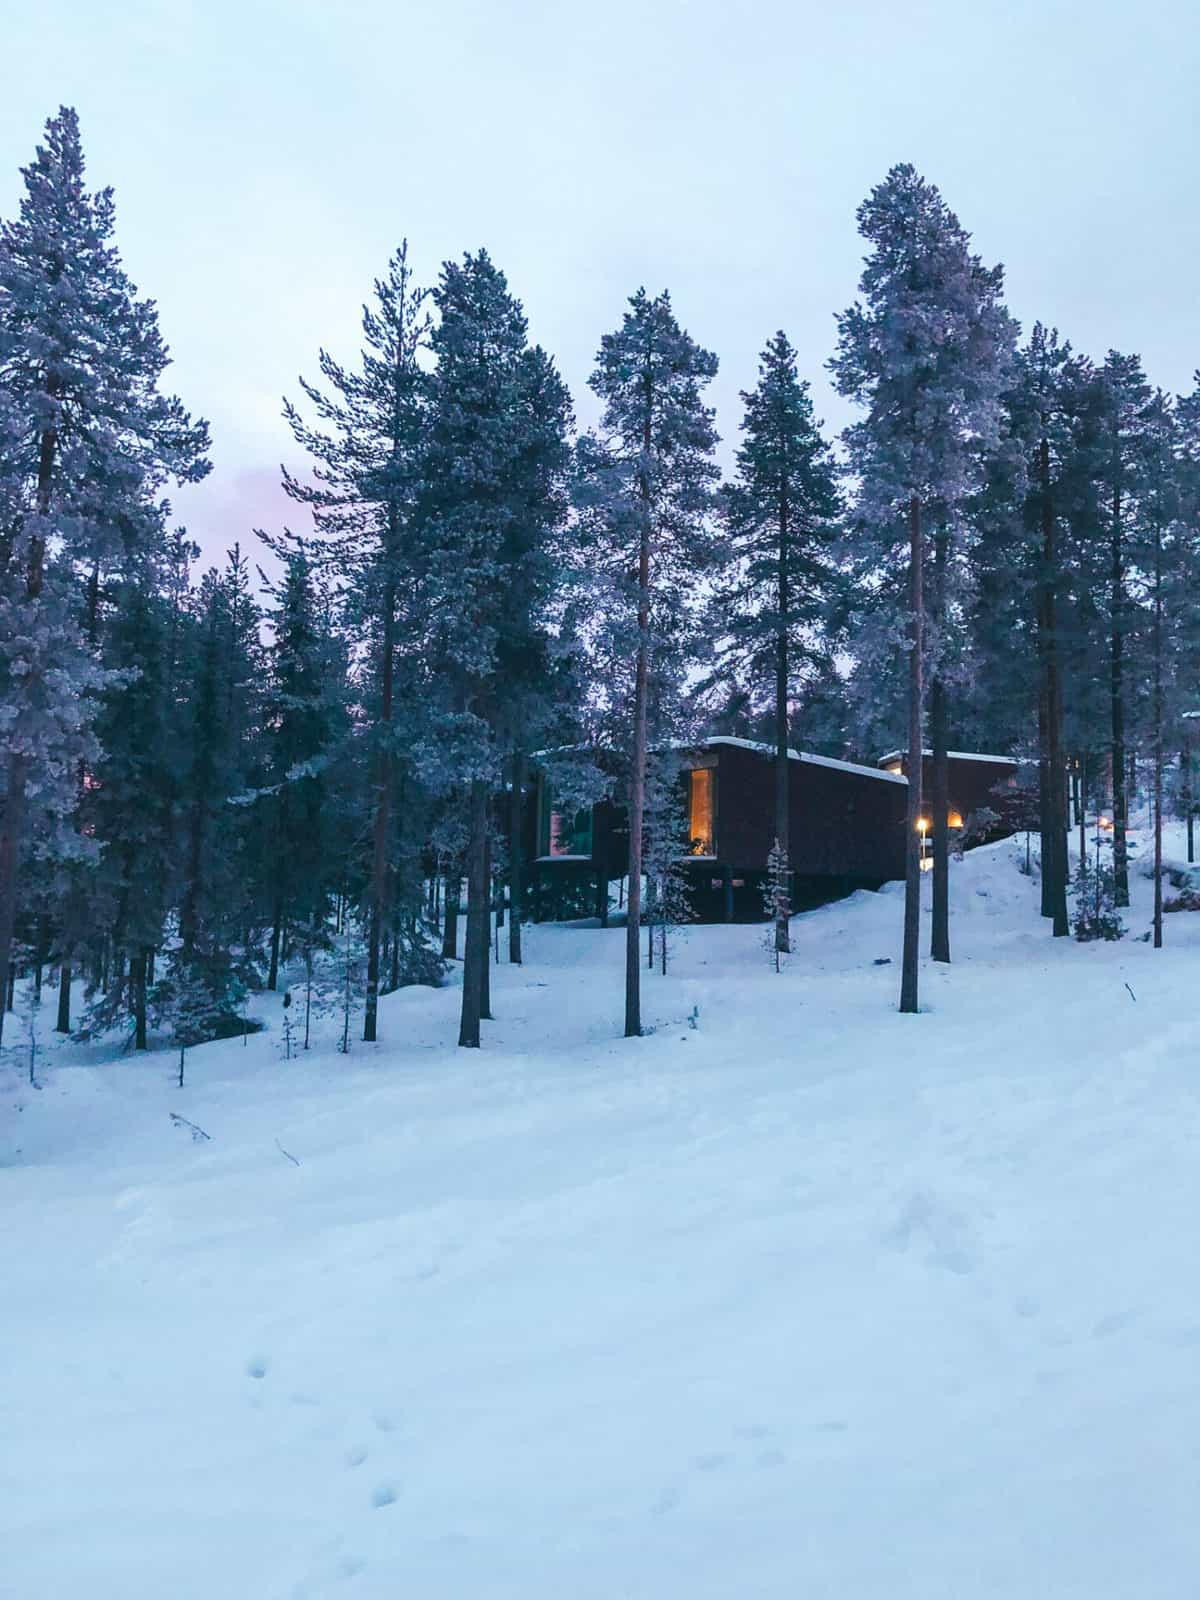 Rectangle rooms in a snowy forest surrounded by snow